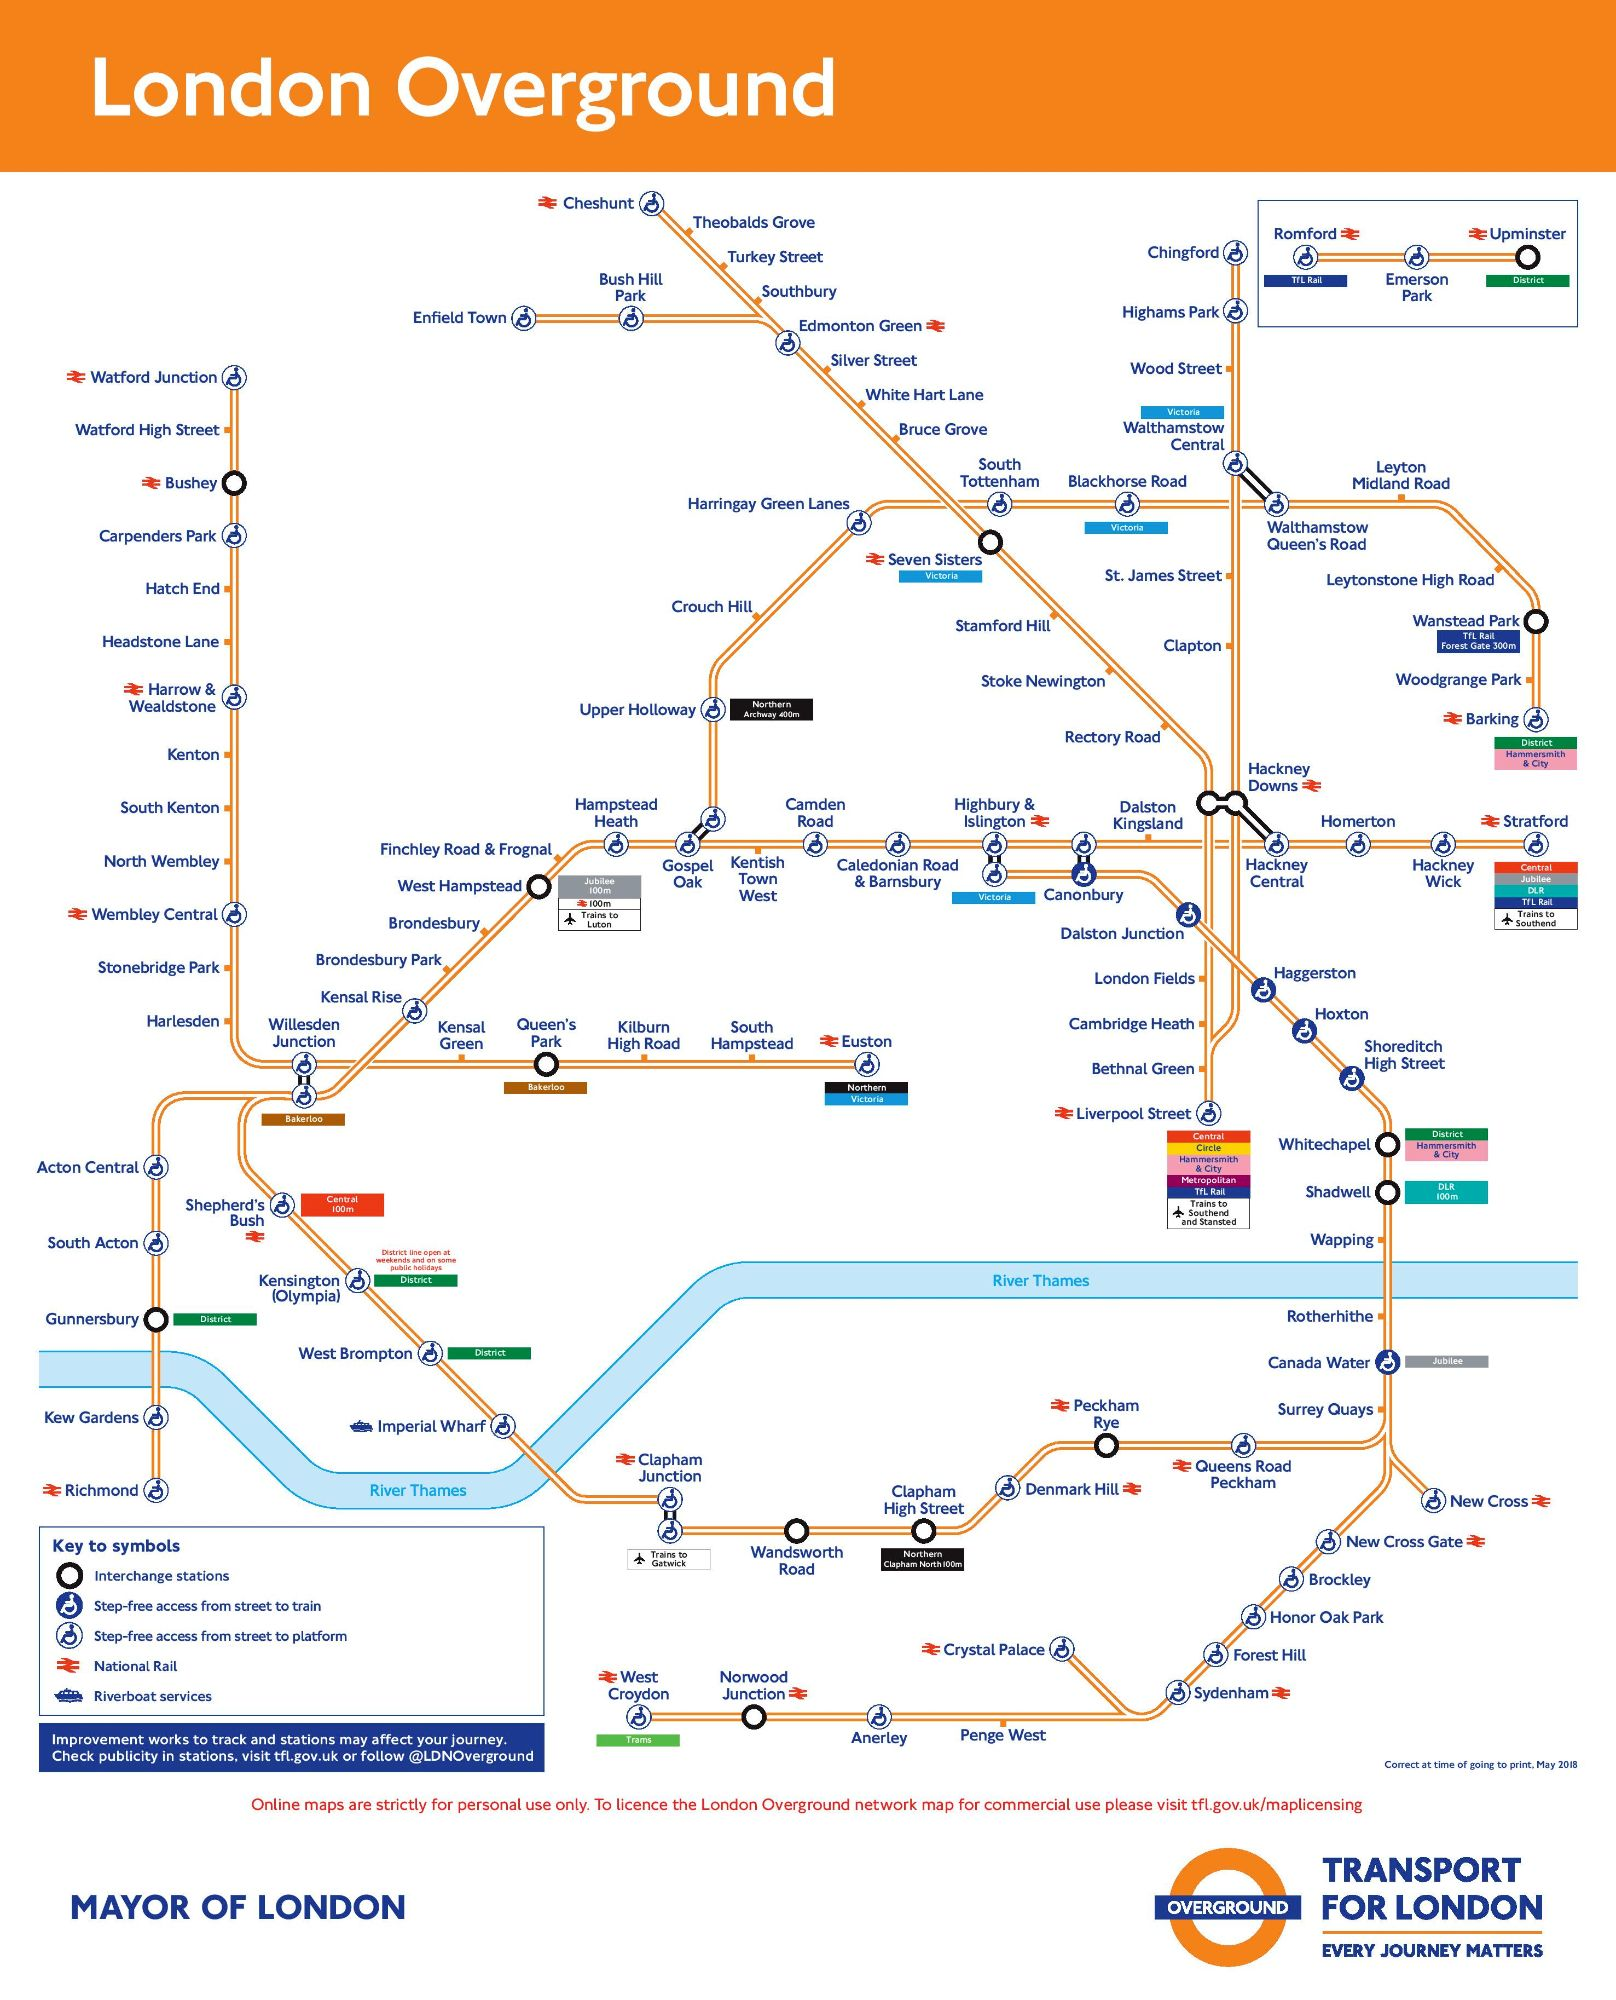 Image of the London Overground route map circa 2021.